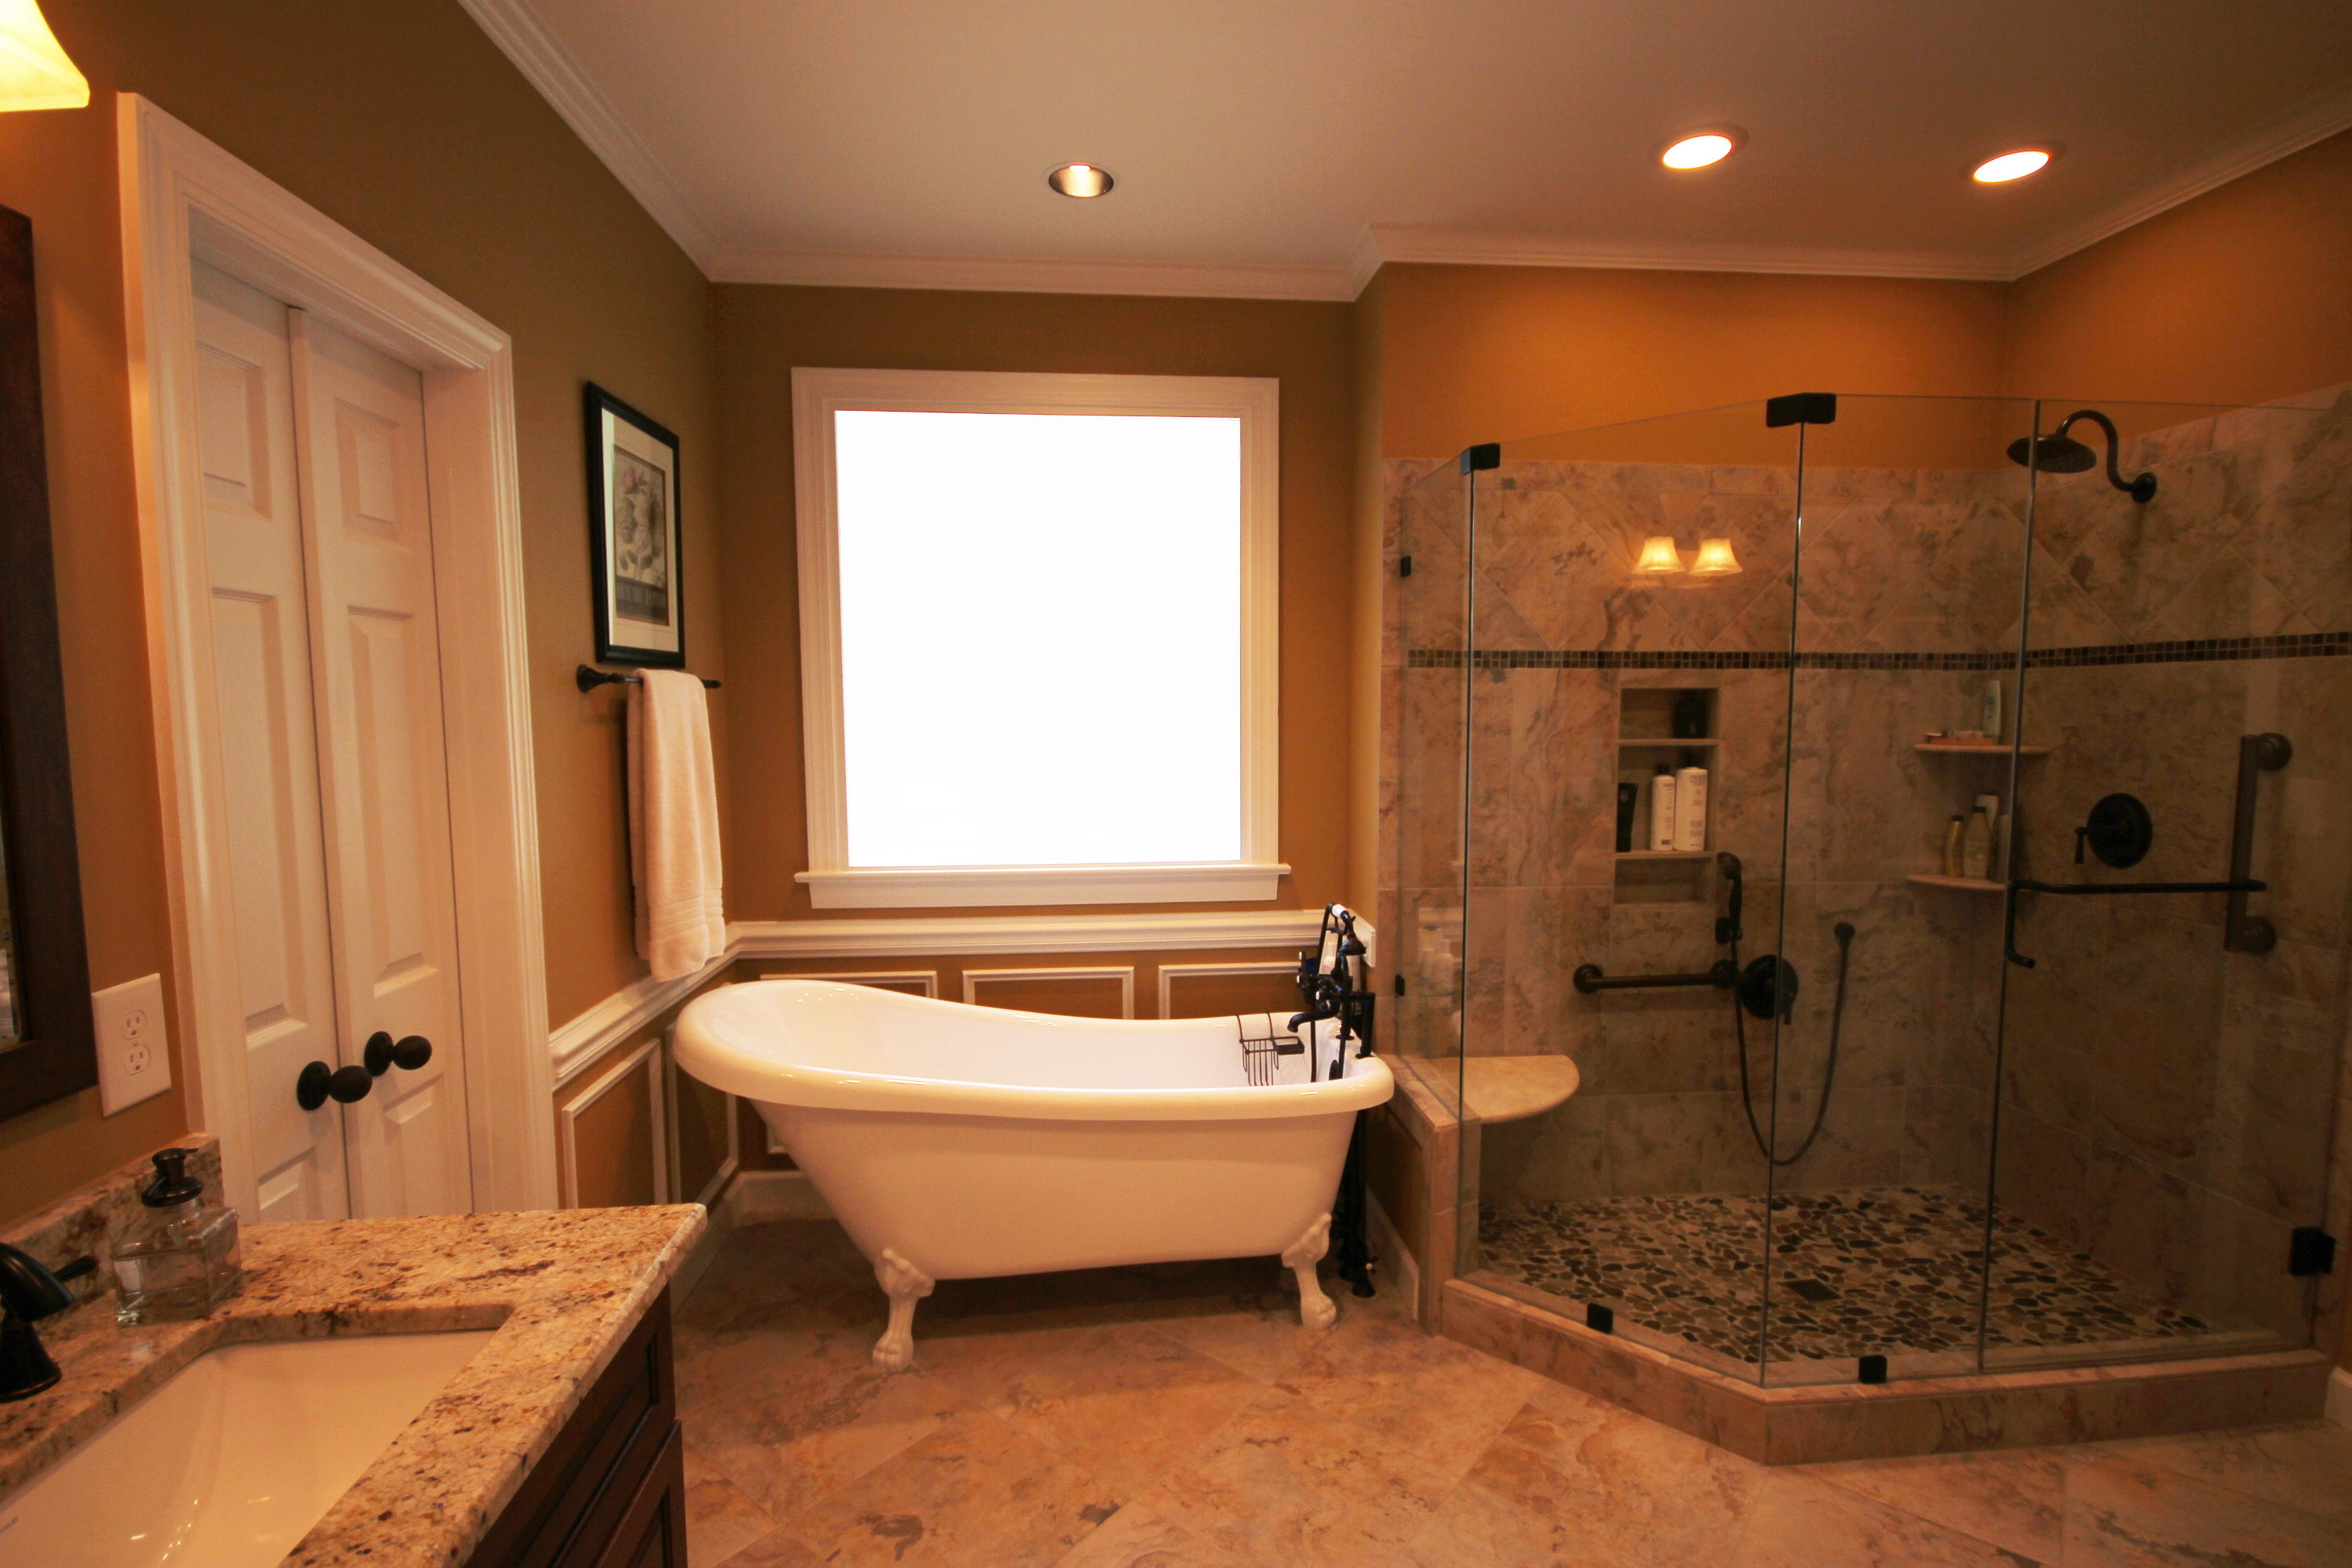 raleigh-bathroom-renovation-companies-4 - The Bath Remodeling Center ...